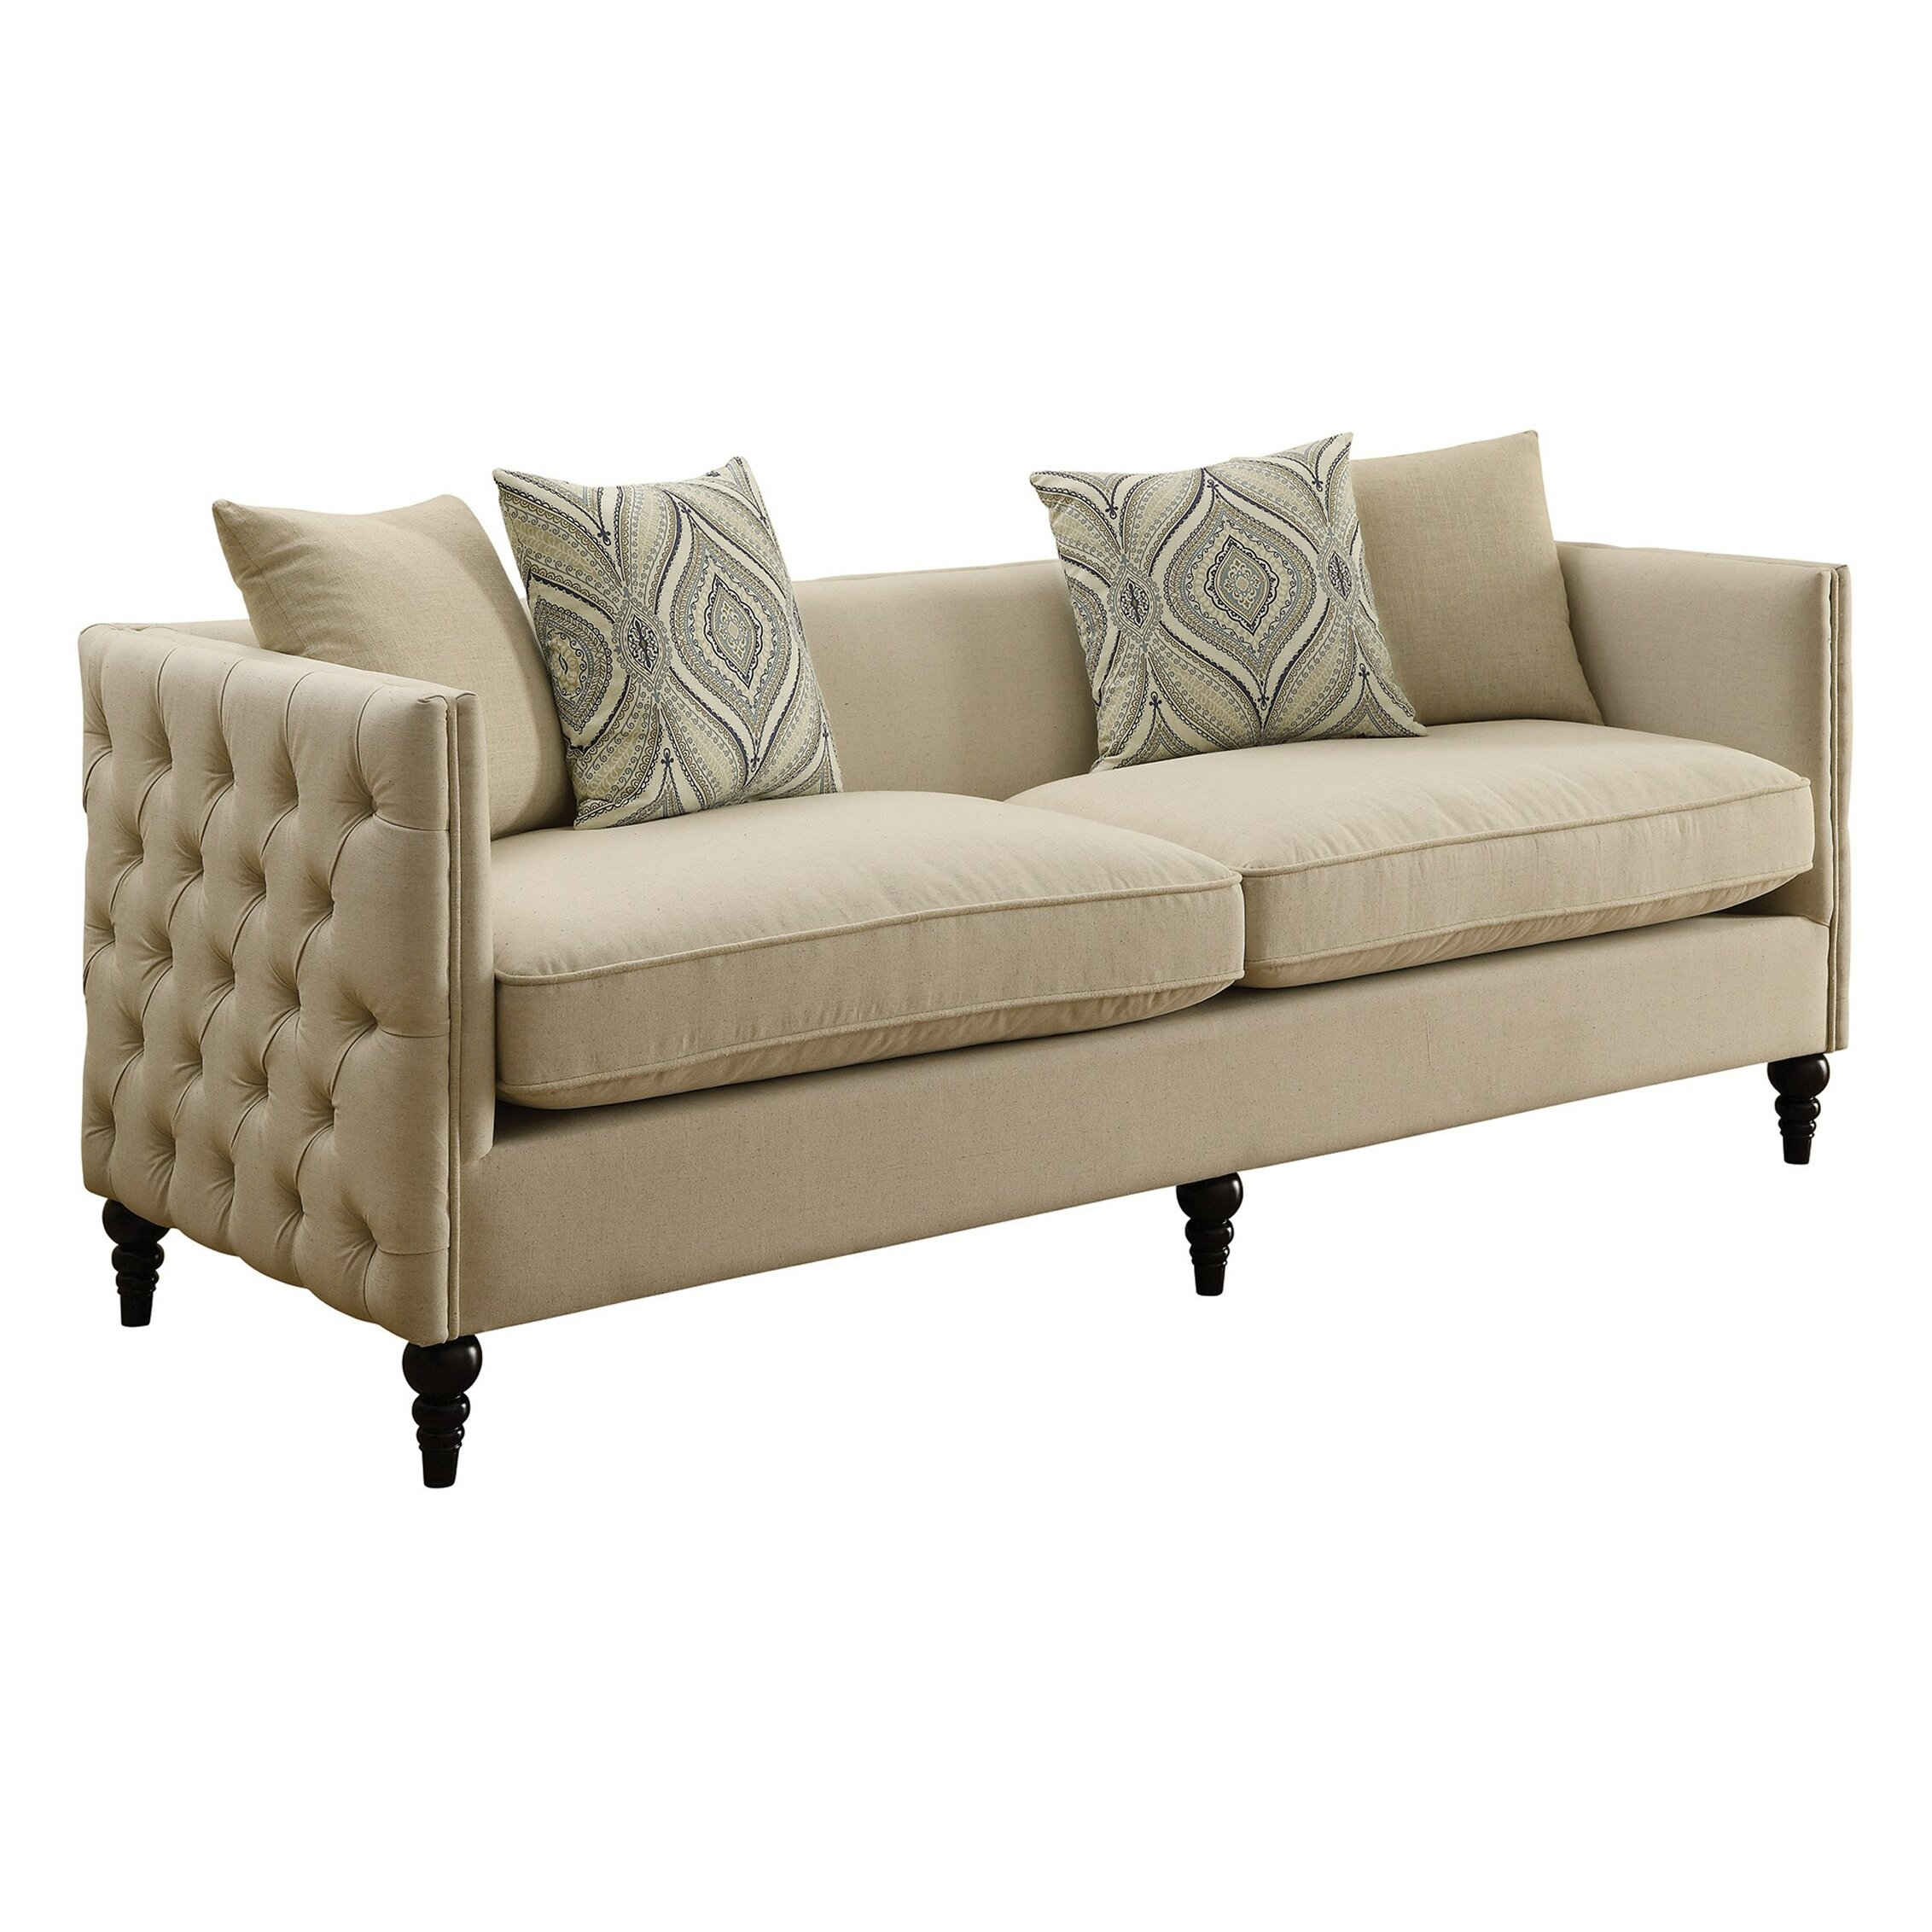 Infini furnishings new rochelle sofa and loveseat set for Couch and loveseat